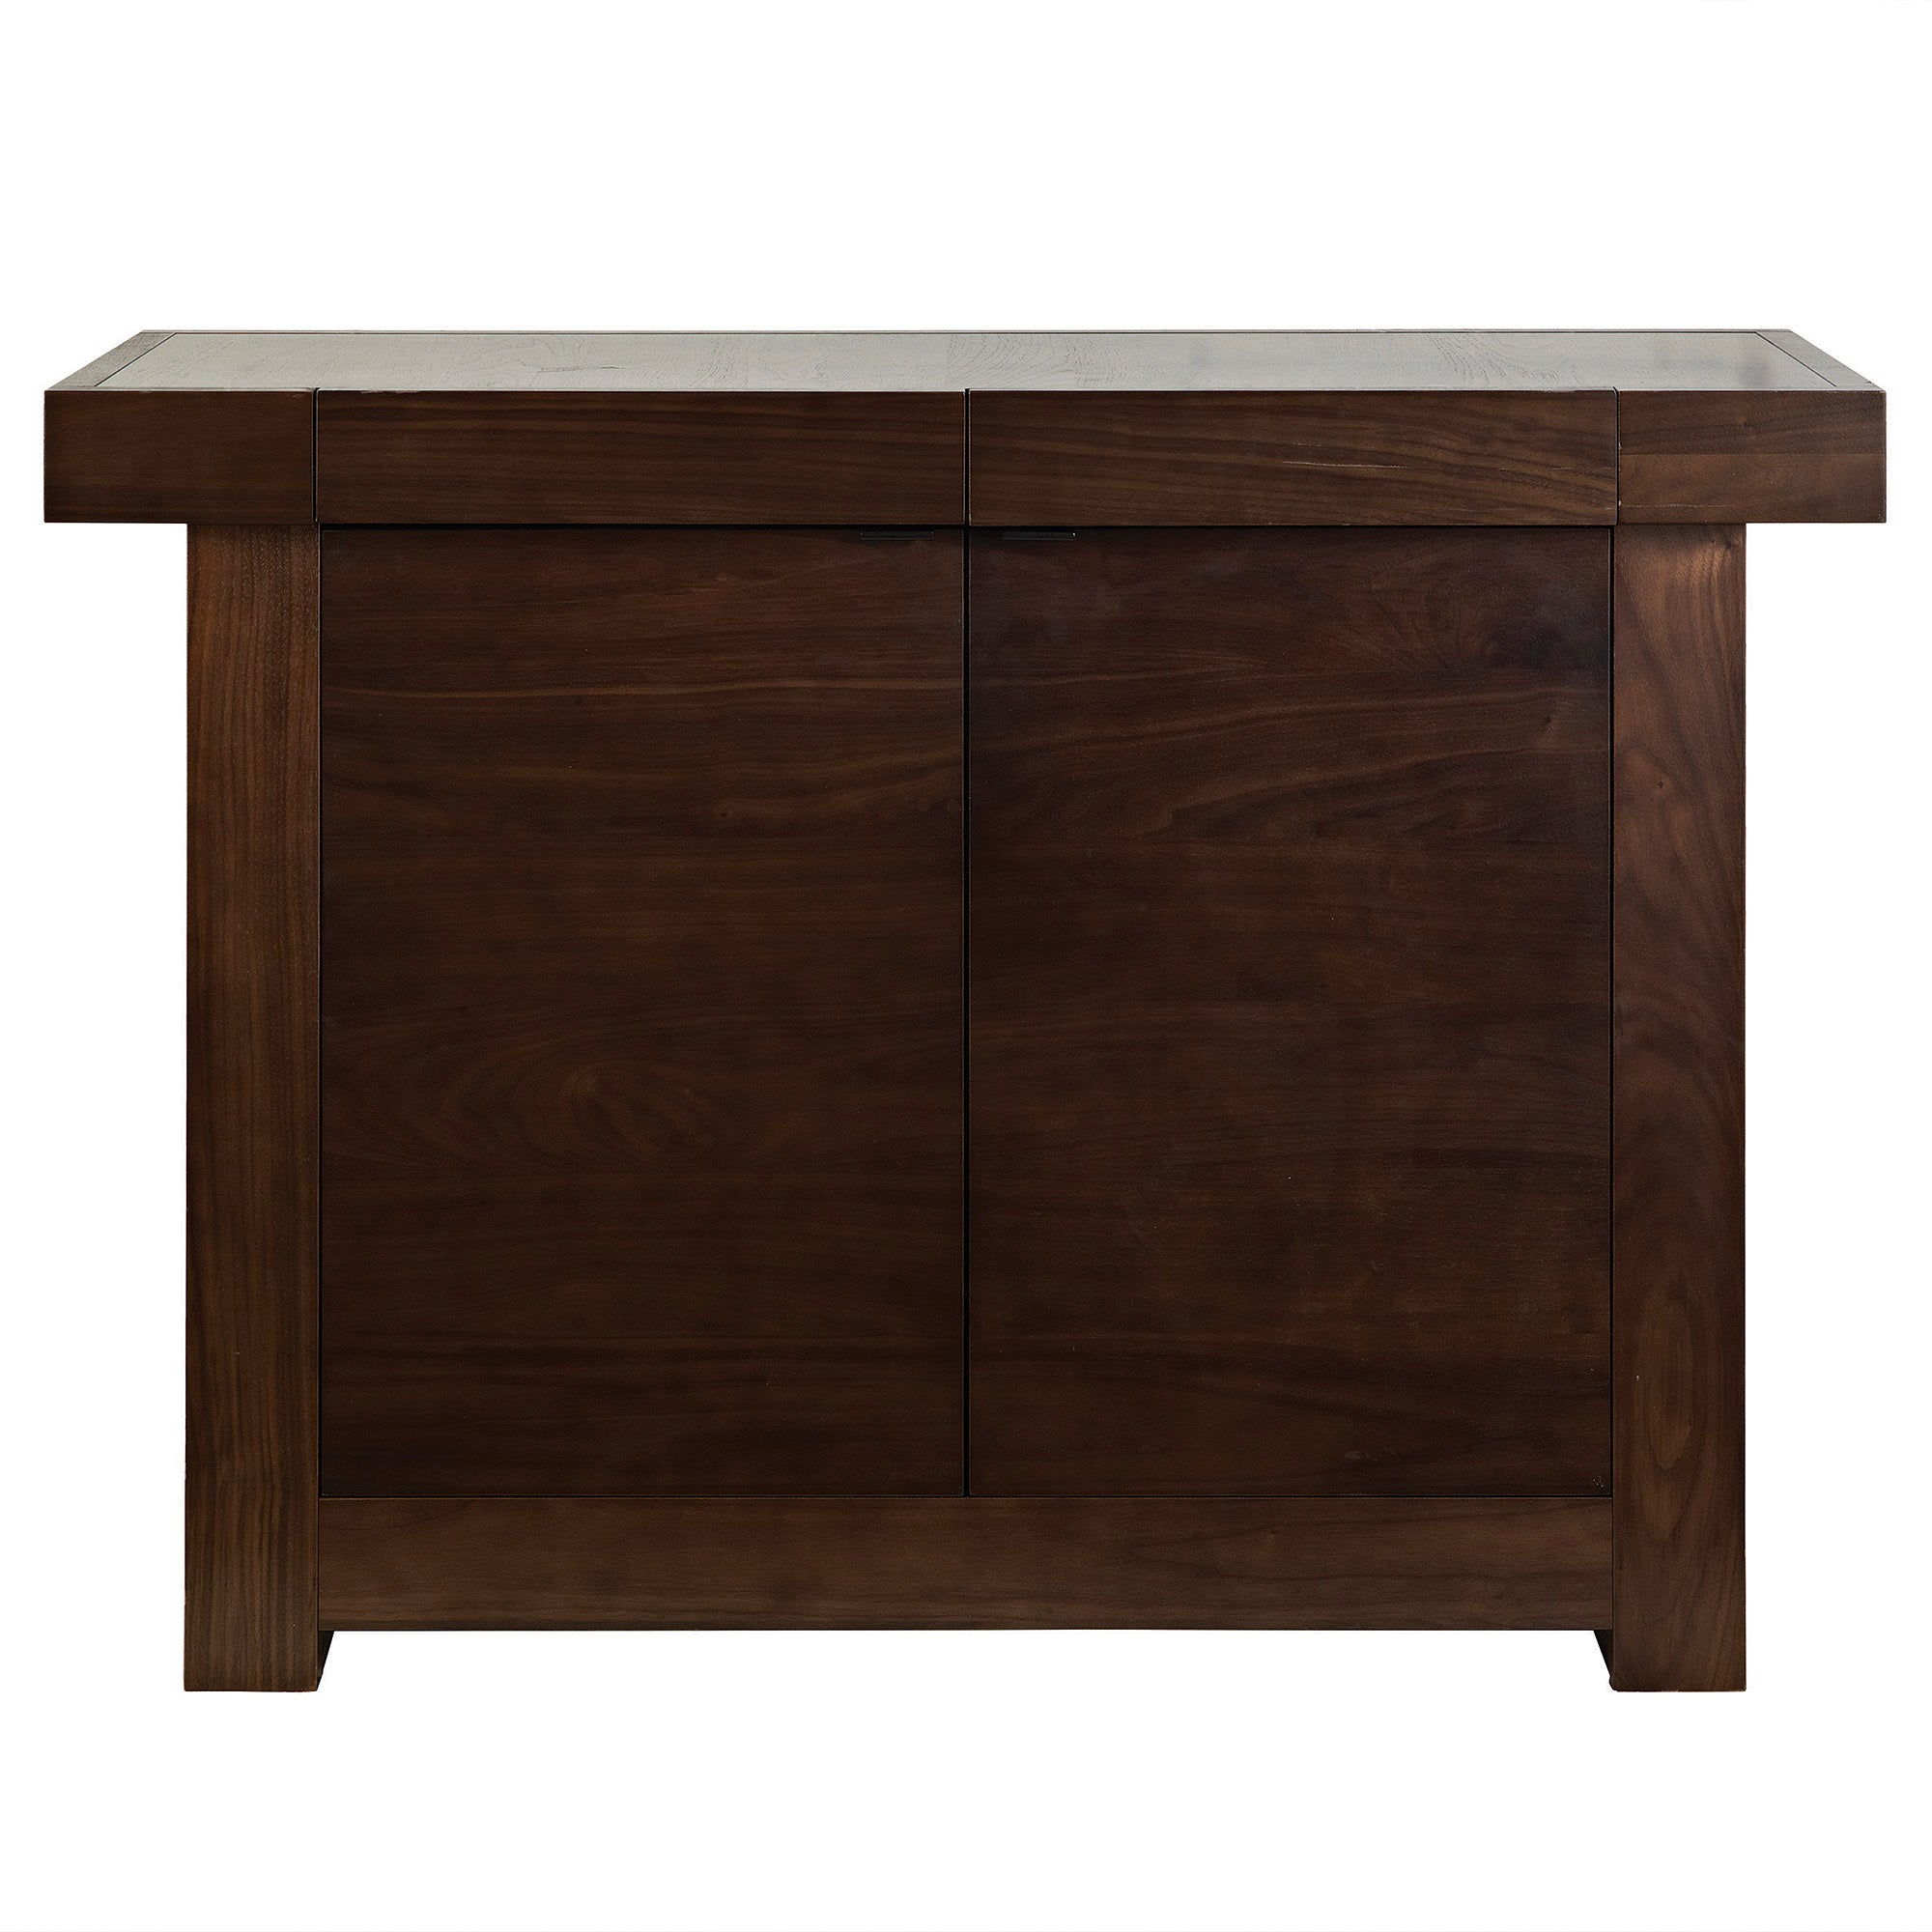 Wade Walnut Narrow Sideboard